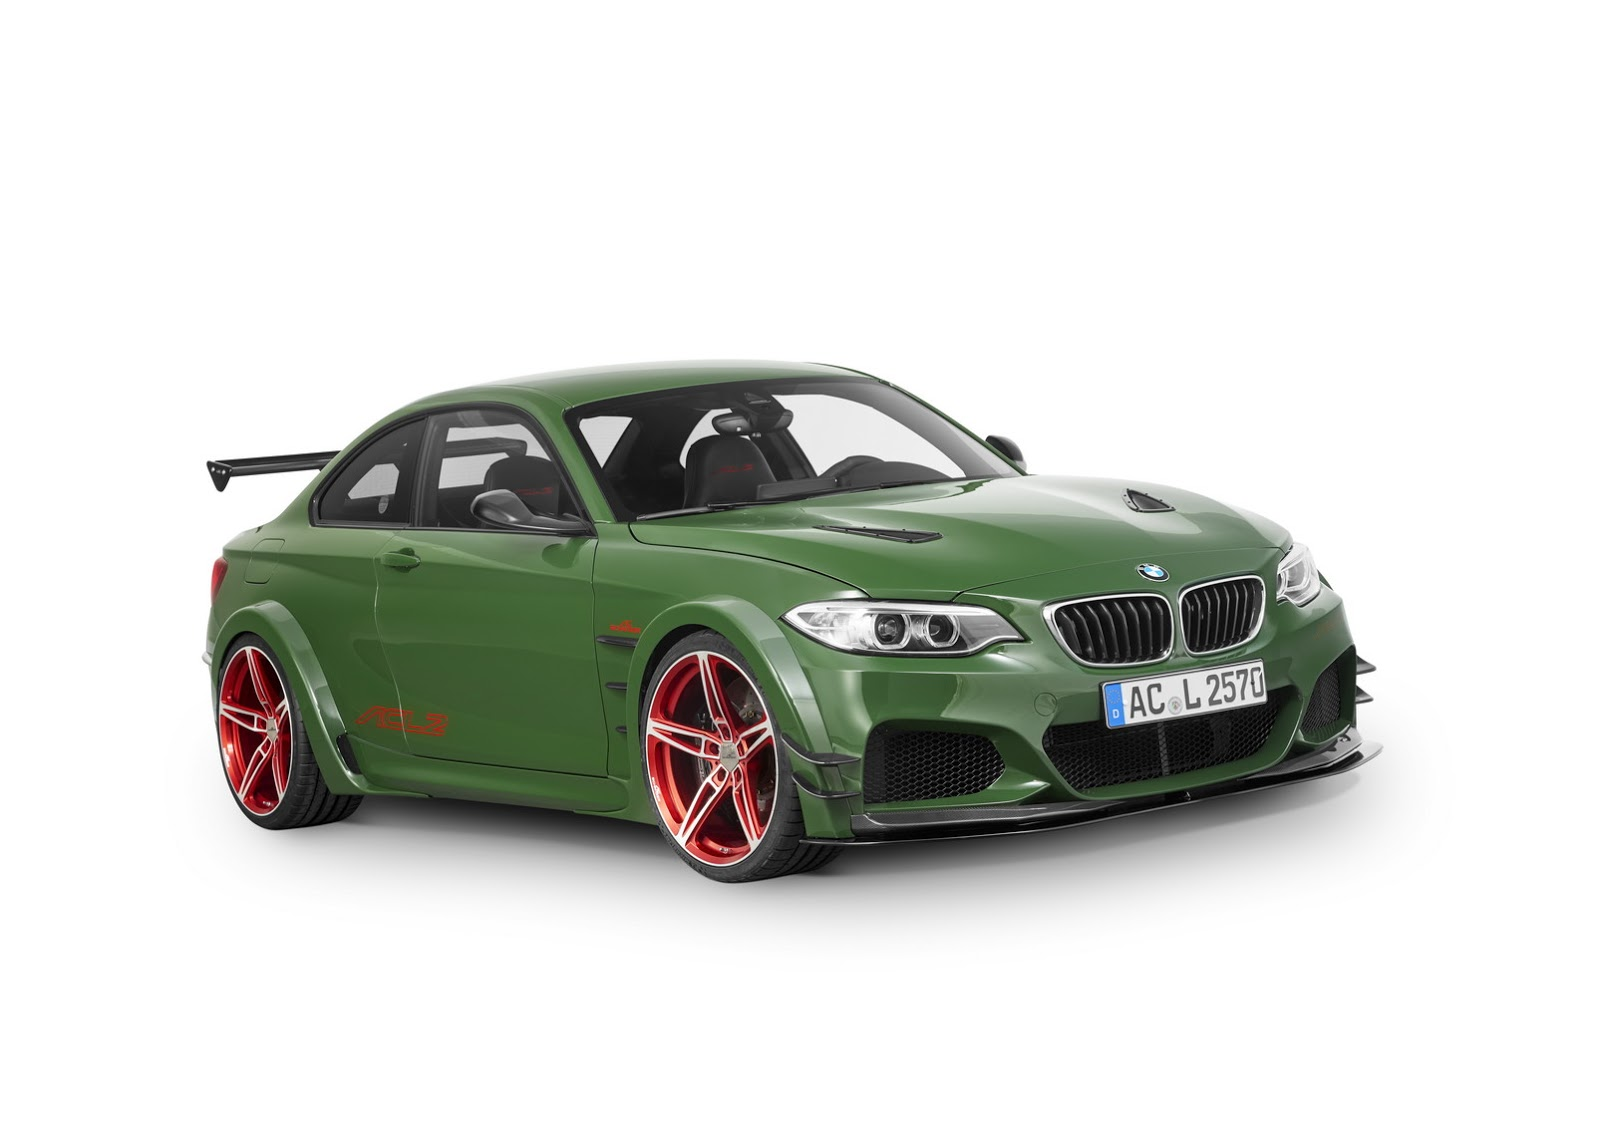 AC Schnitzer ACL2 (14)